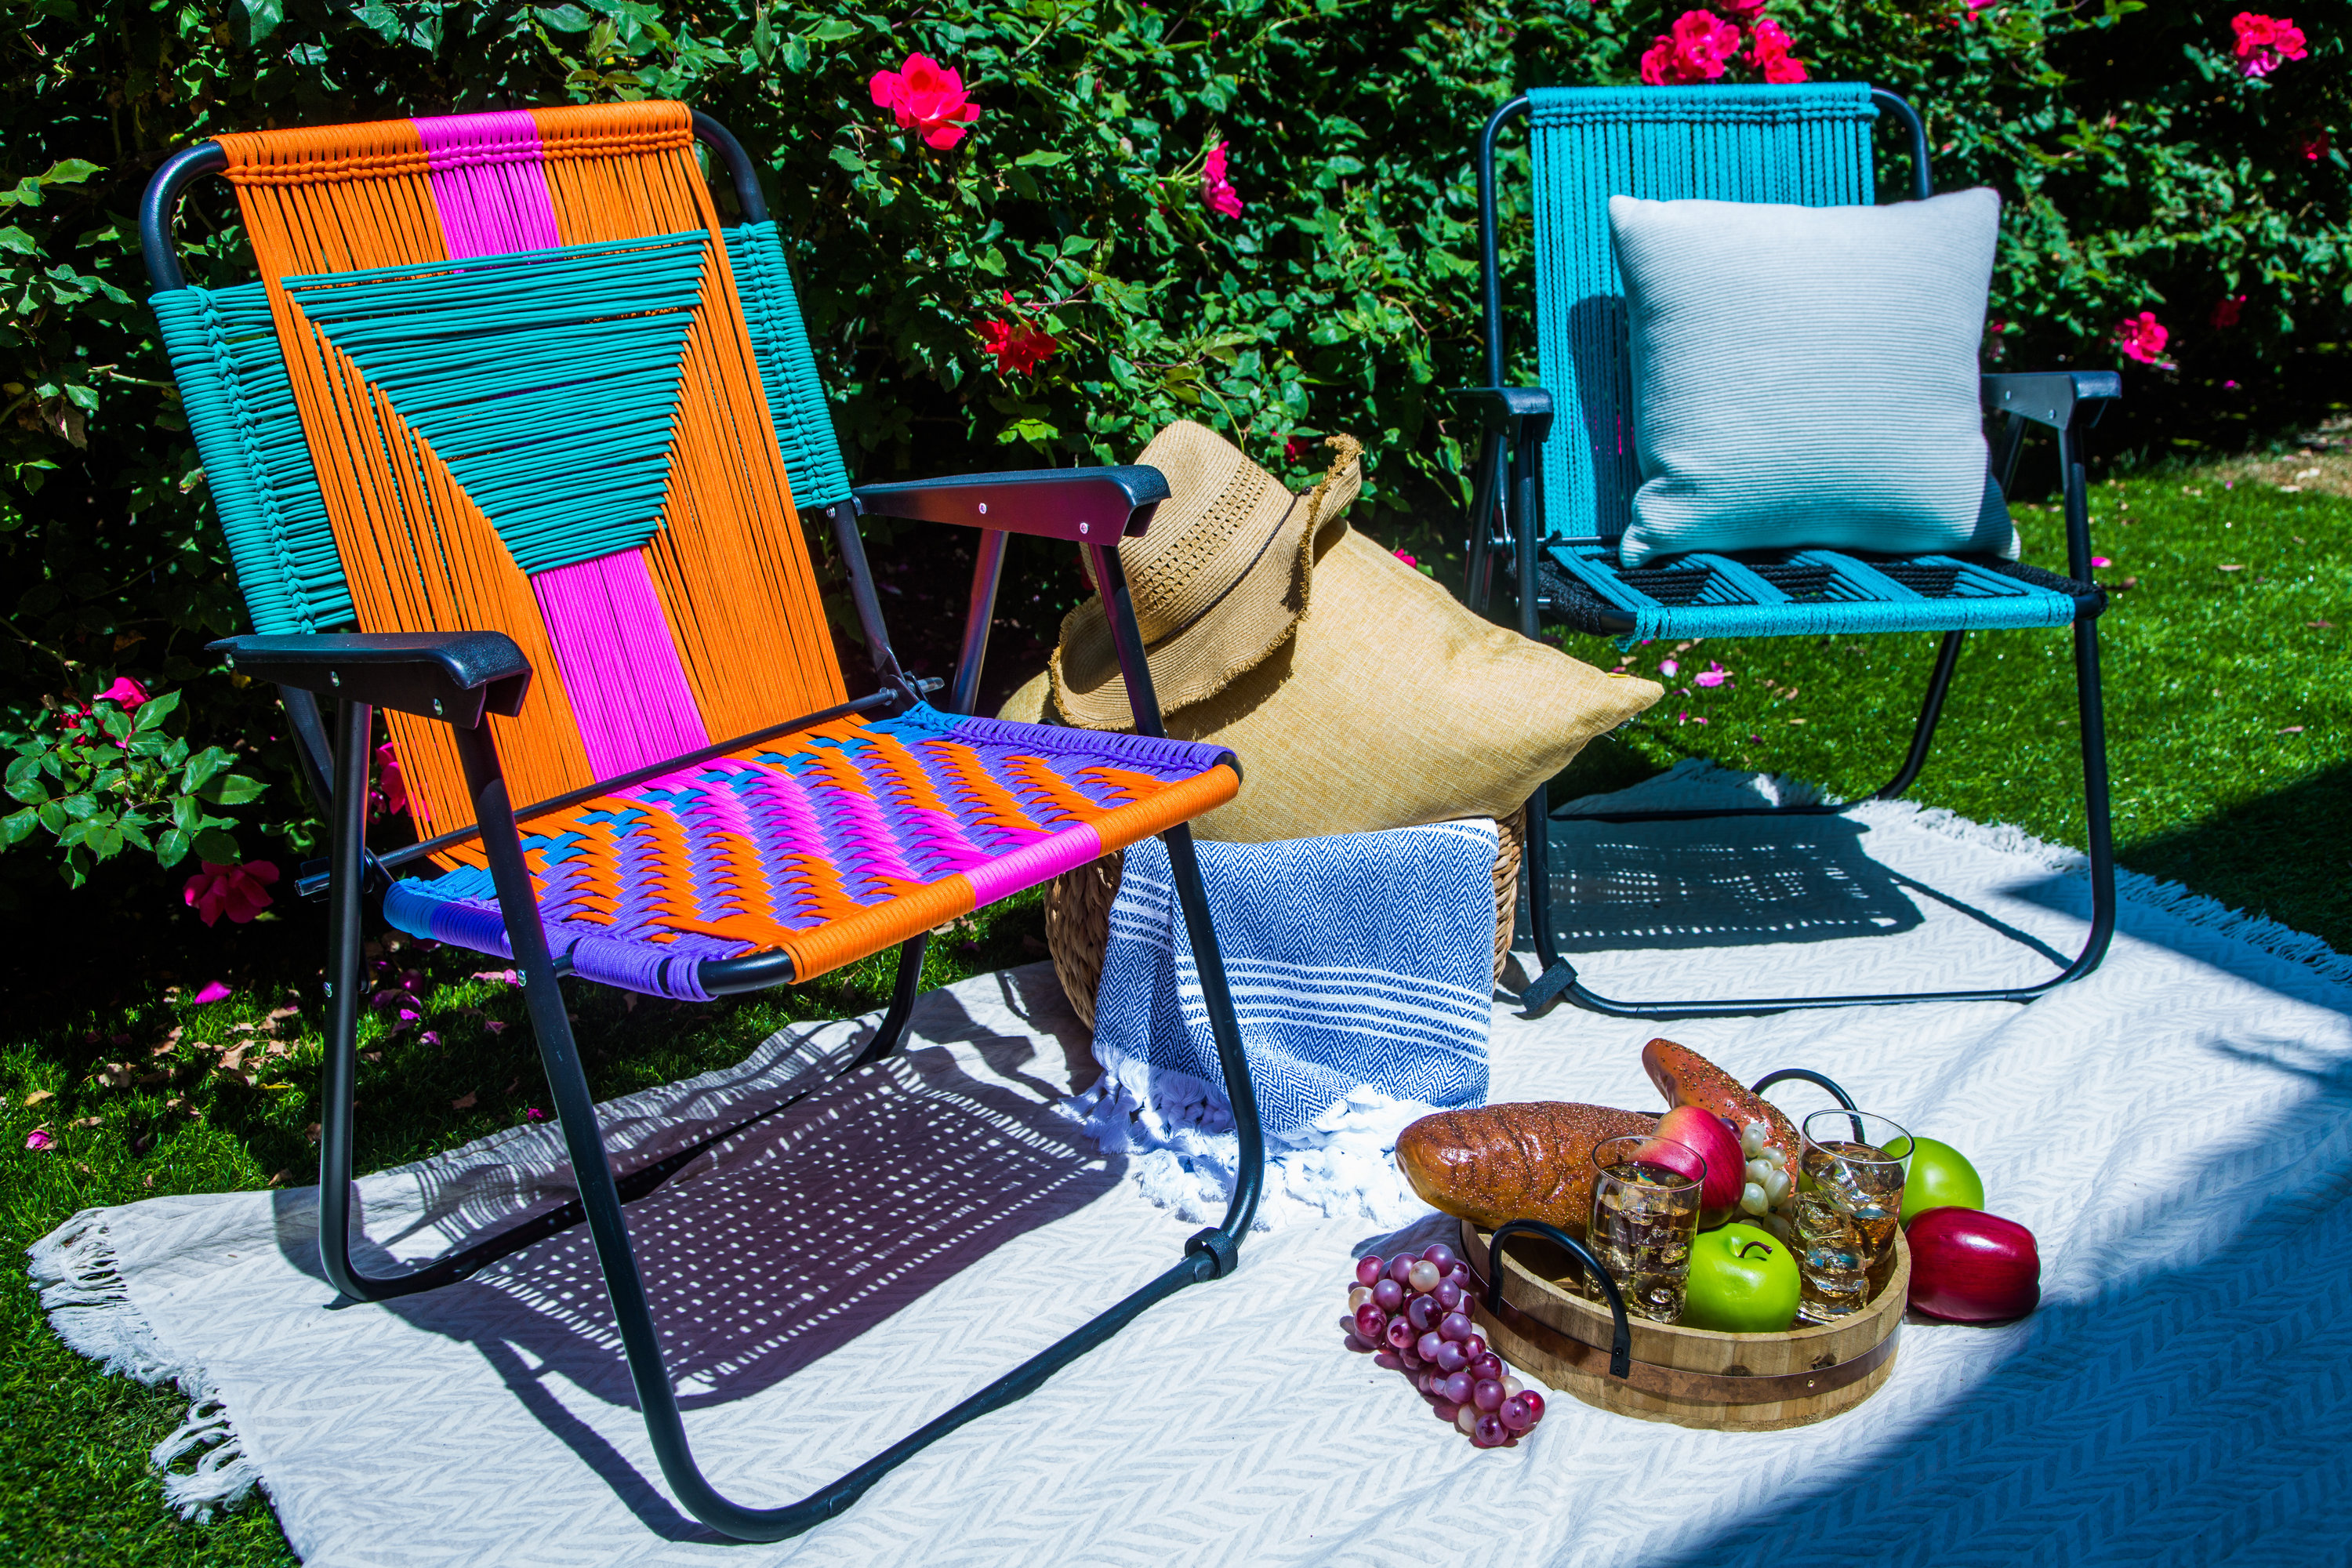 Woven Lawn Chair How To Diy Macrame Lawn Chairs Hallmark Channel